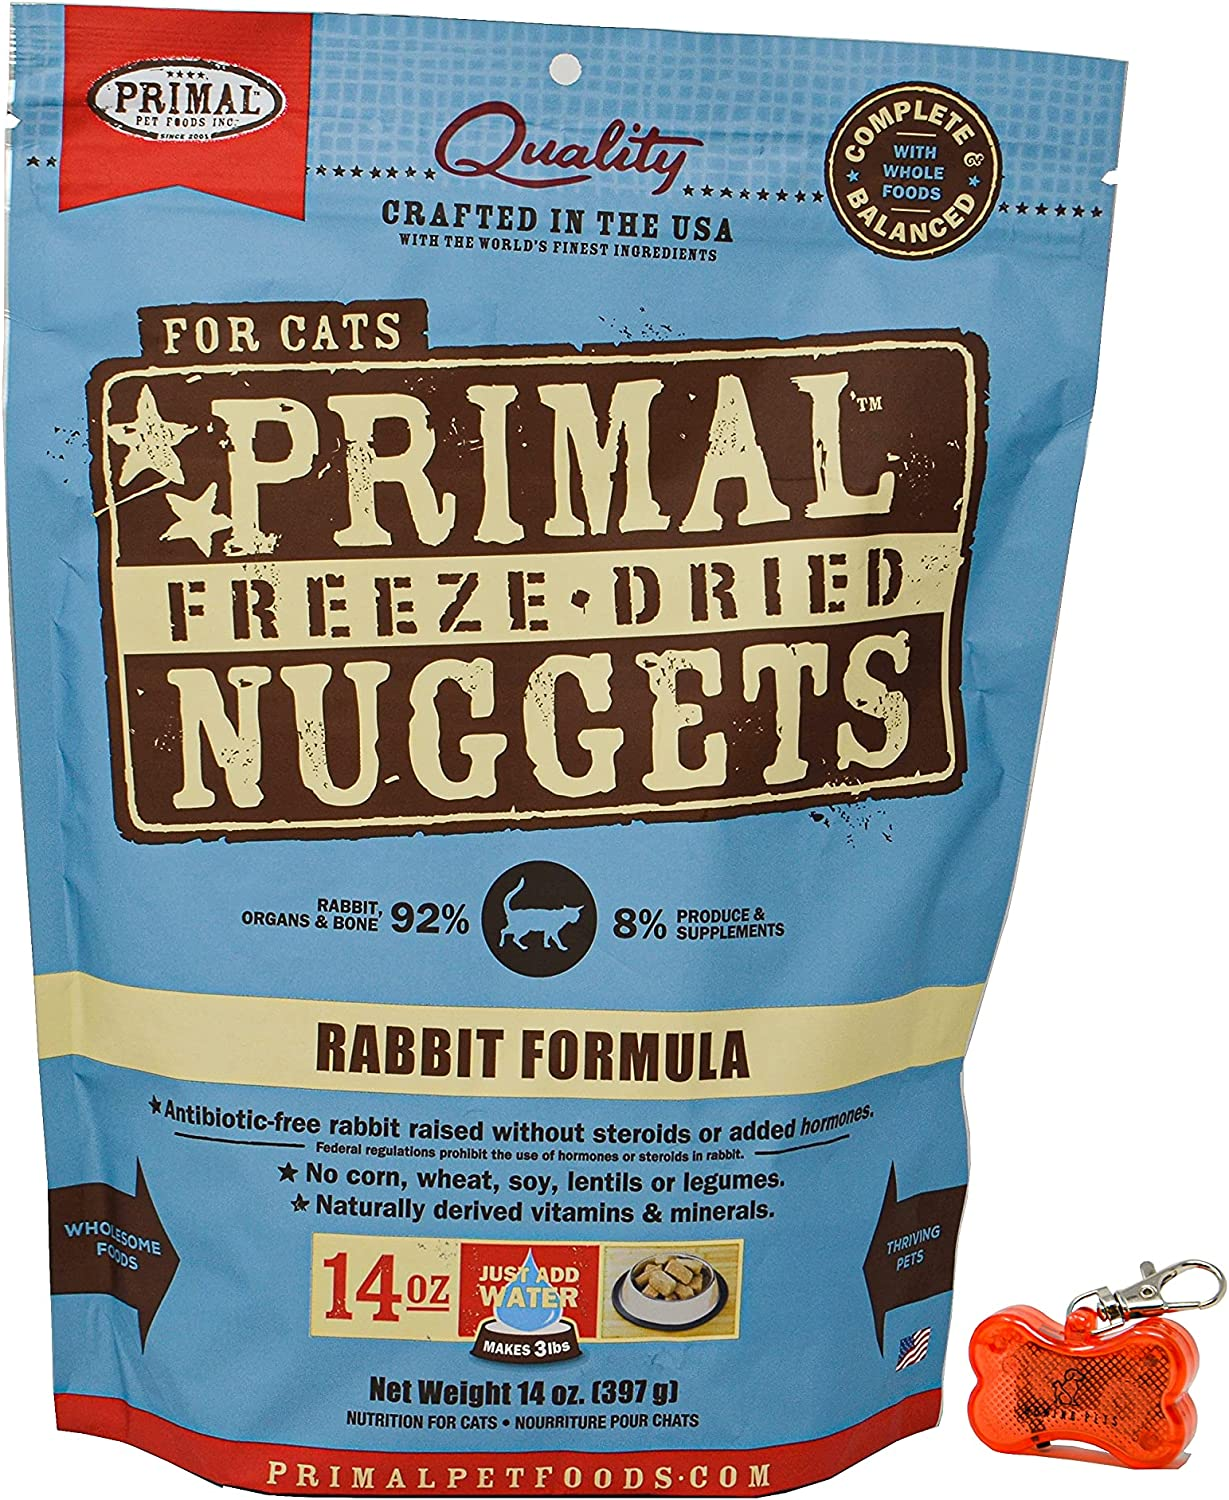 Primal Pet Food - Freeze Dried Rabbit Nuggets Cat Food 14oz Bag with WoWing Pets Pendant